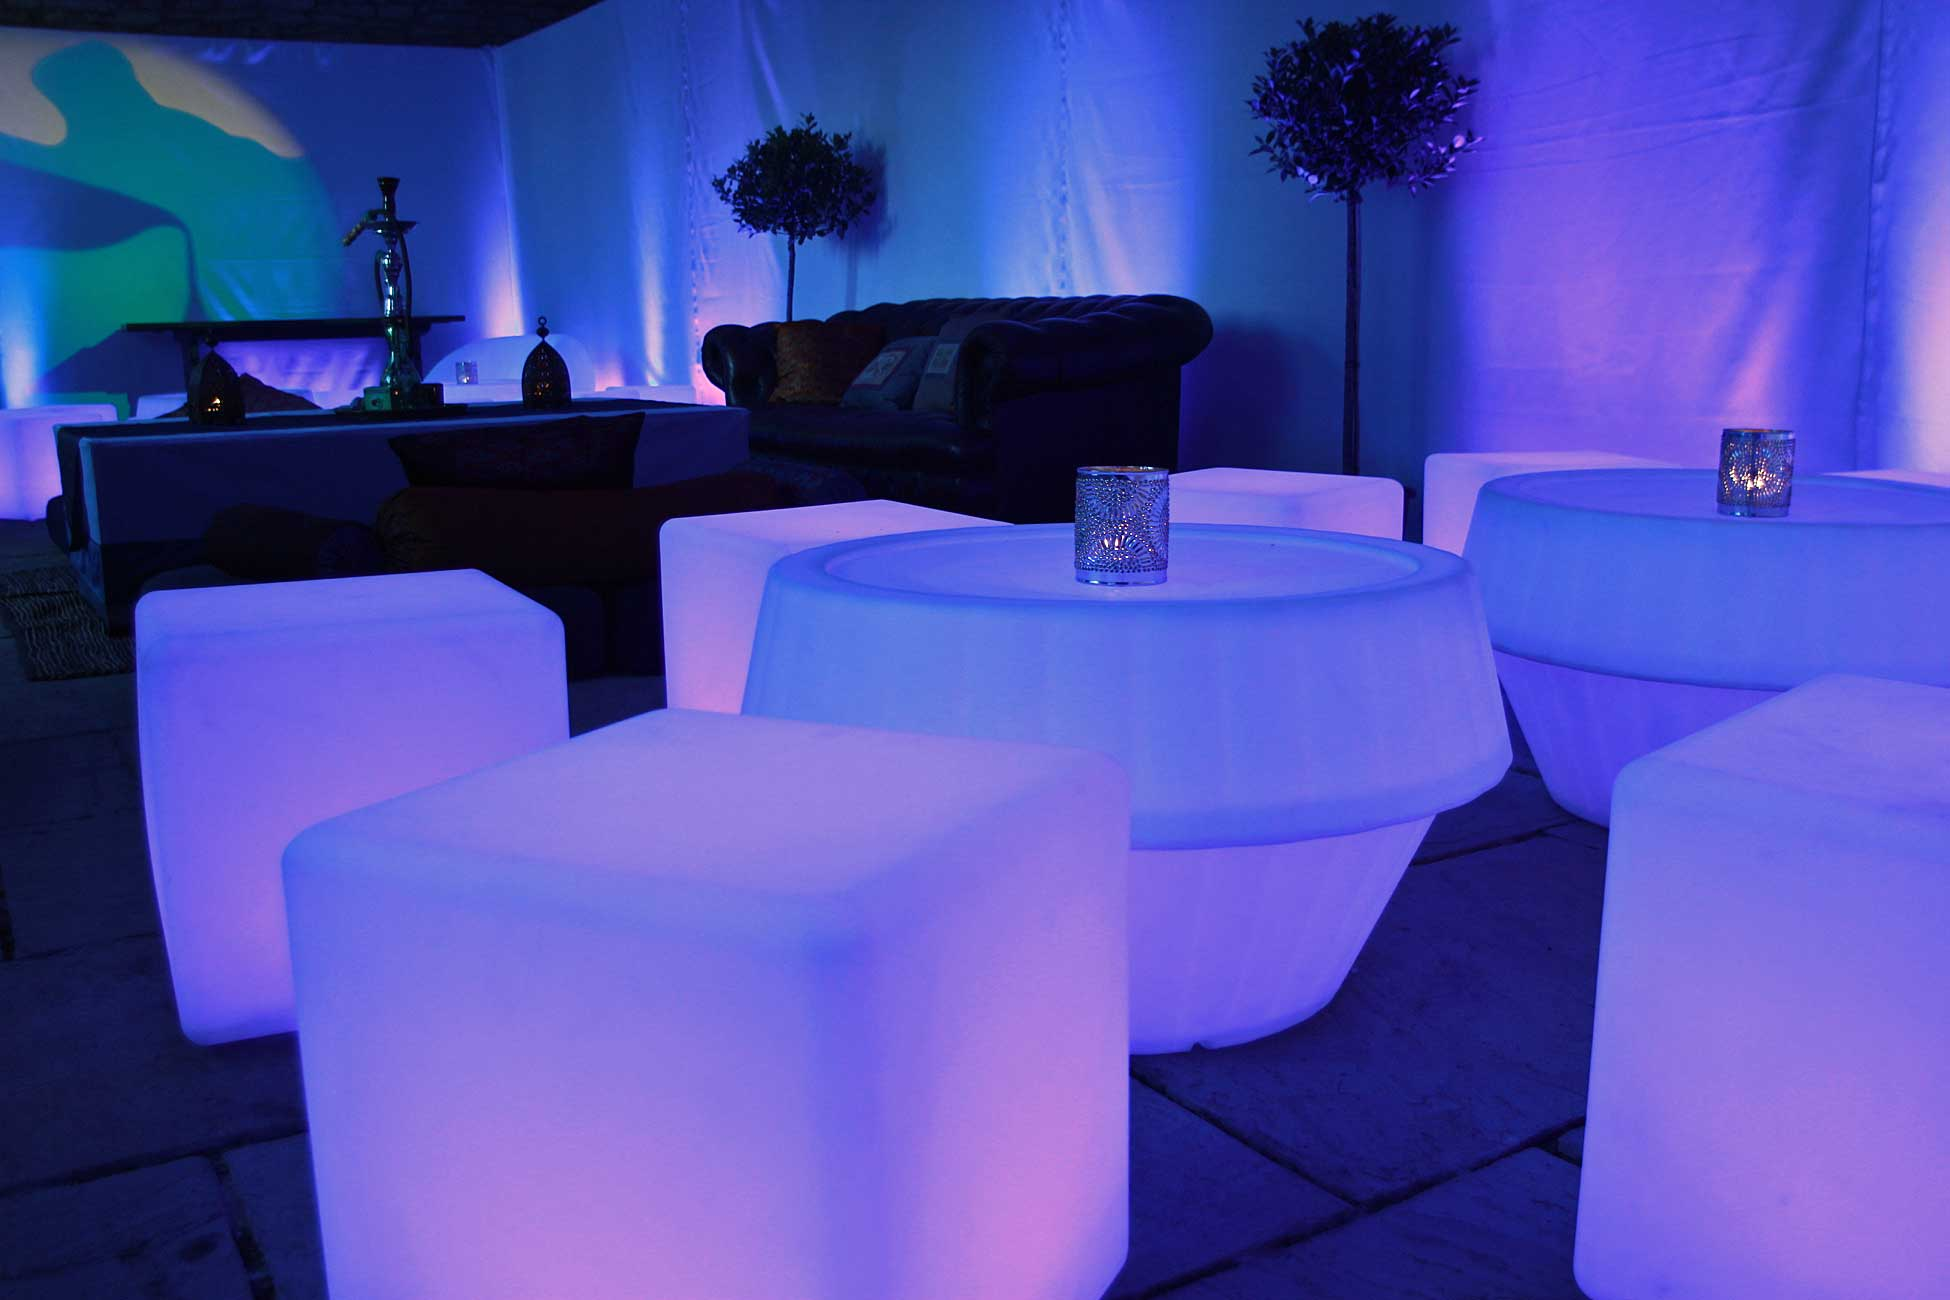 Image of LED furniture with Shisha Pipes and topiary